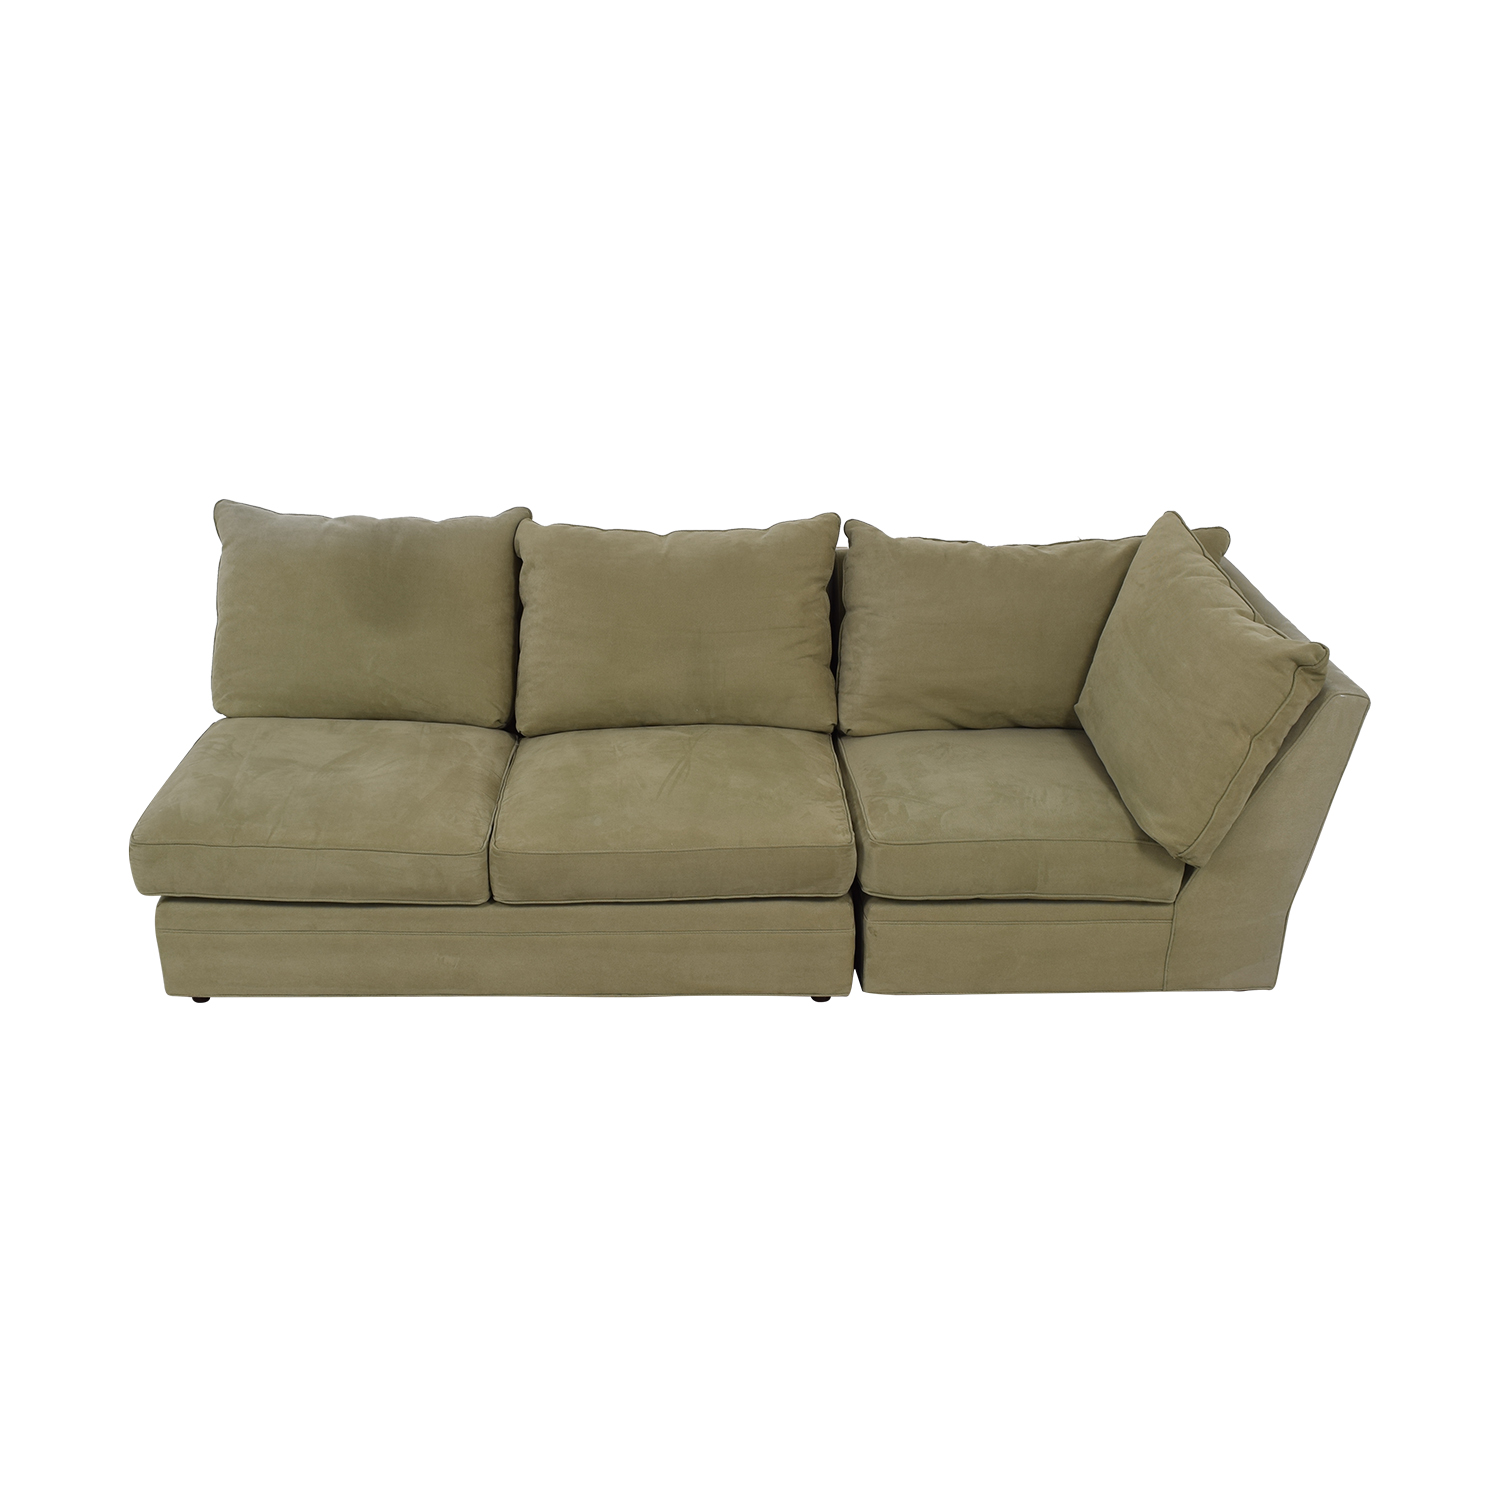 Macy's Macy's Beige Right Facing Arm Two-Piece Sofa discount